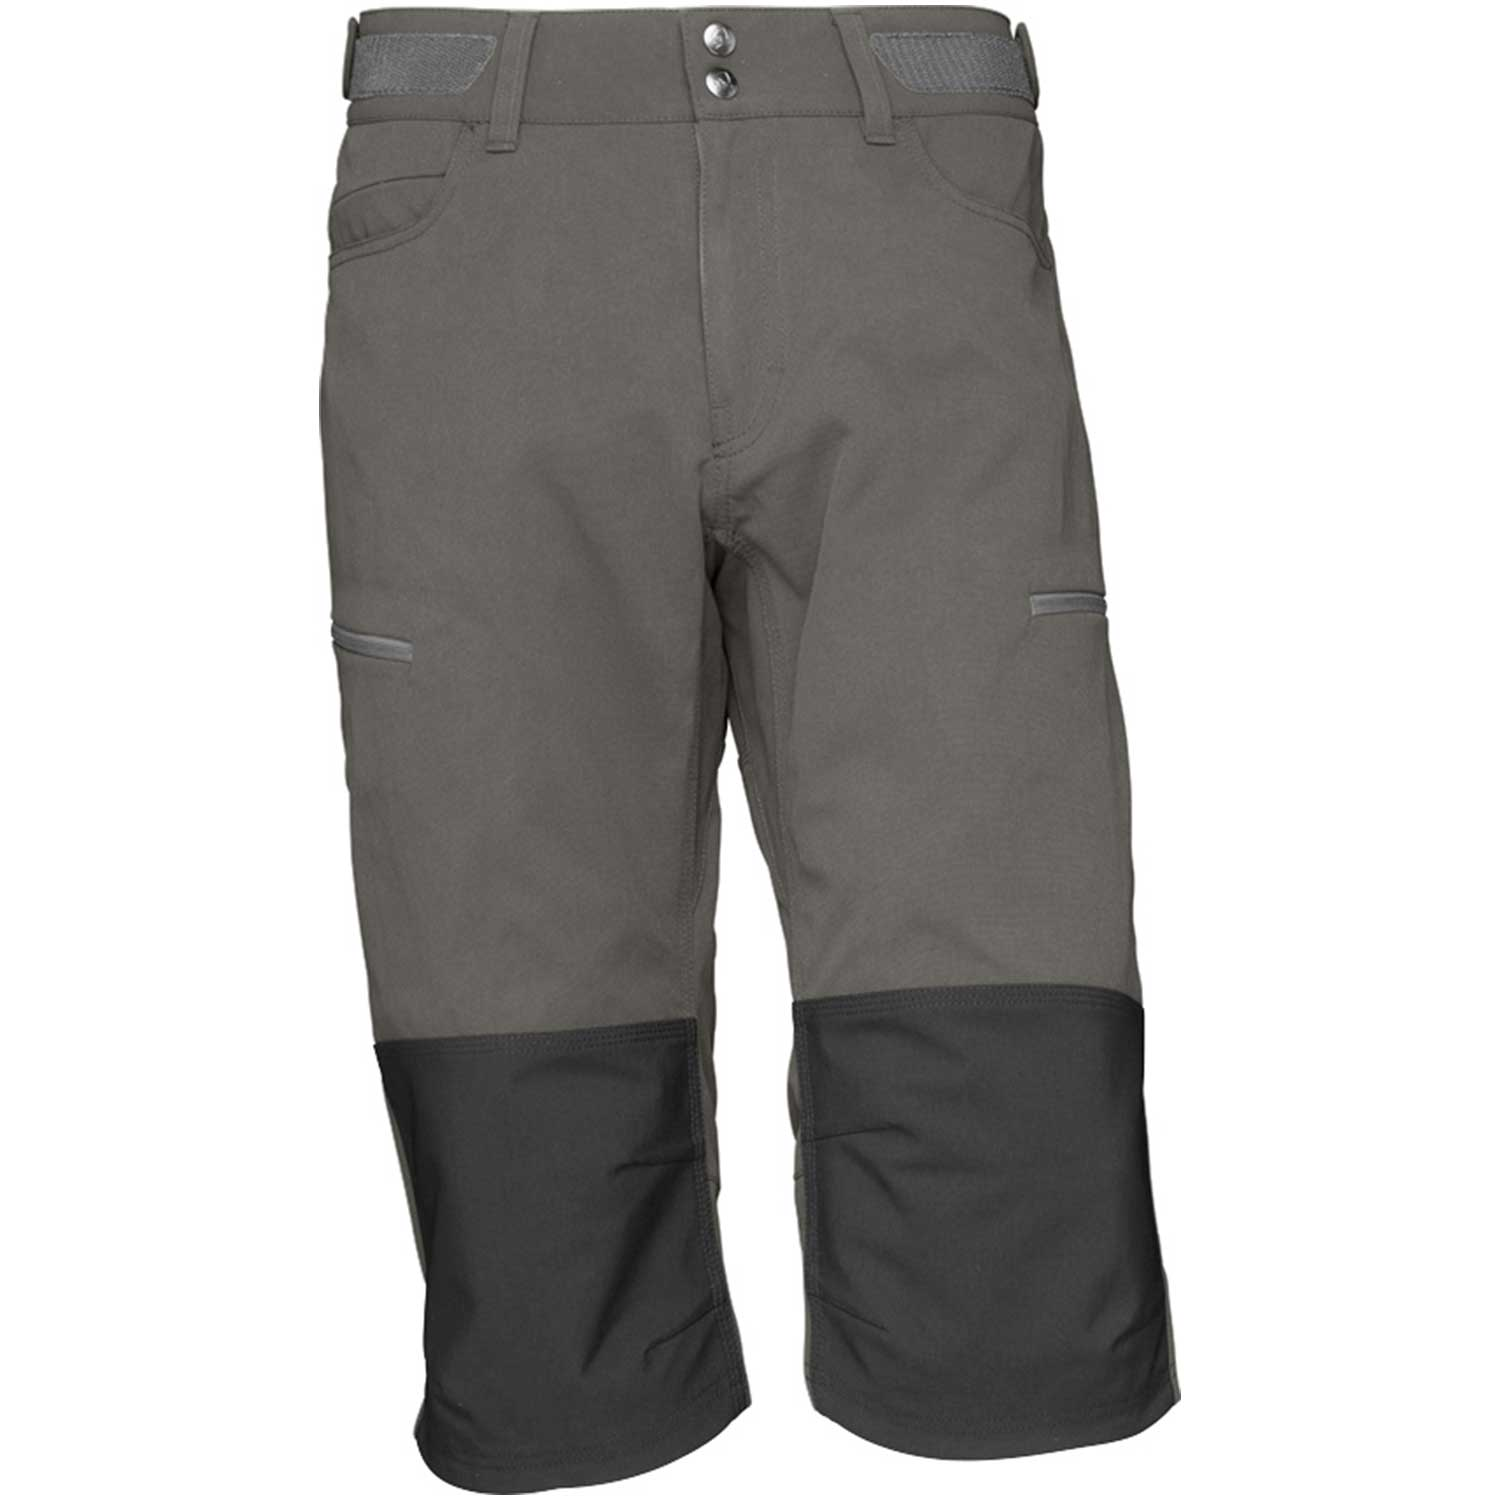 svalbard heavy duty Shorts (M)